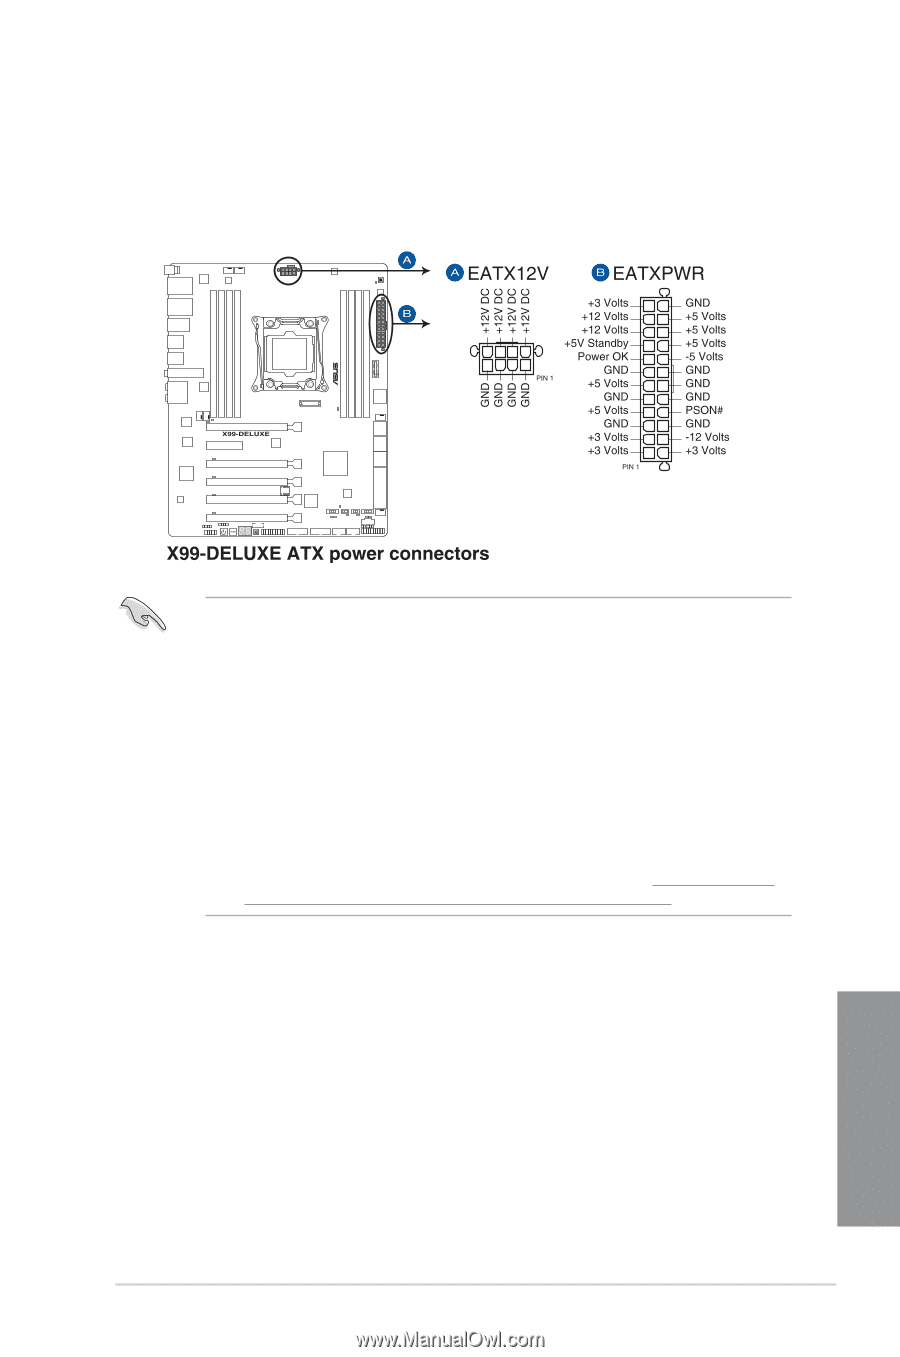 Asus X99-DELUXE | User Guide - Page 42